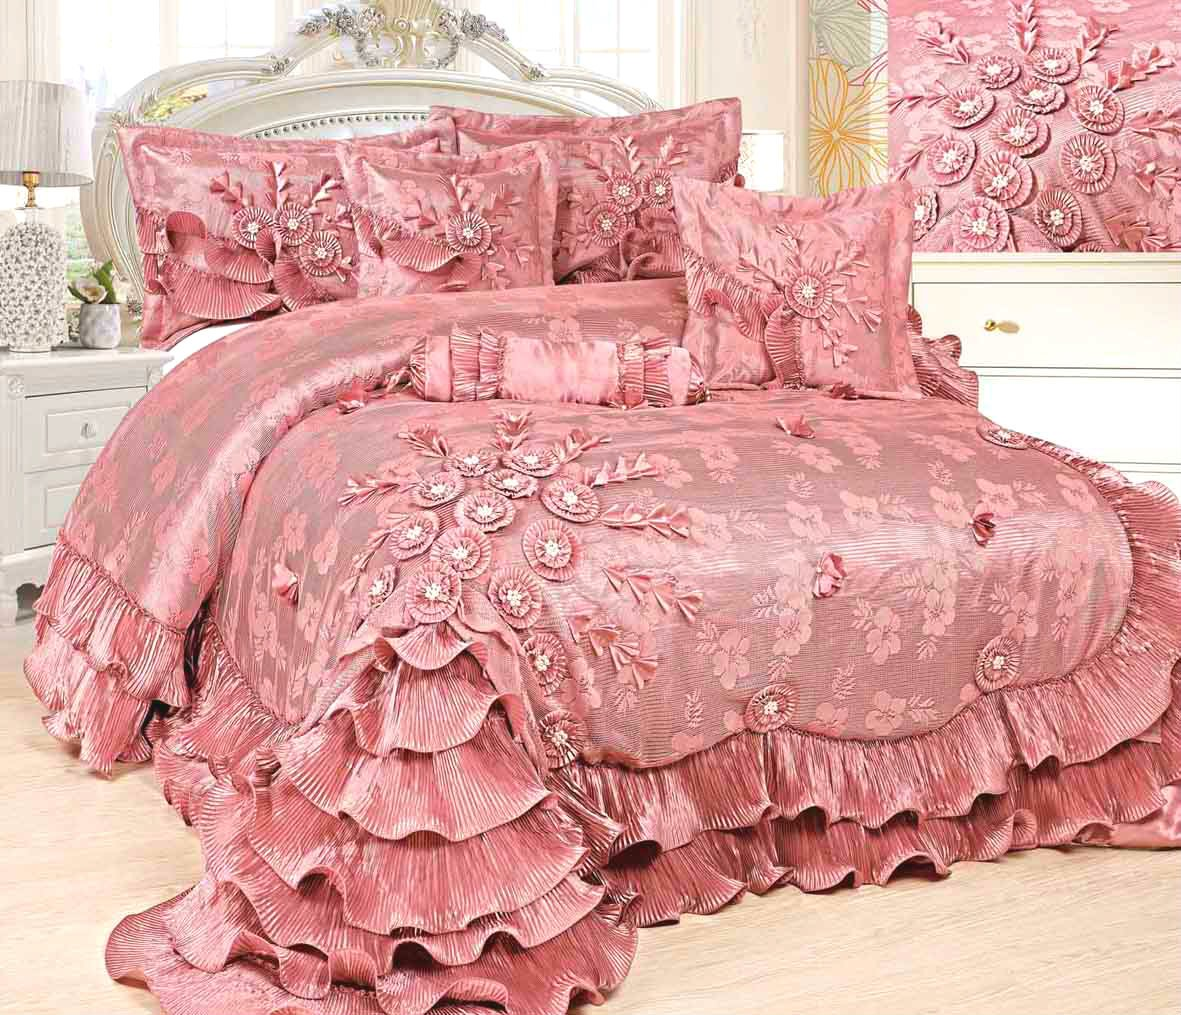 Tache 6 Piece Faux Satin Pink Royal Dreams Comforter Set, Queen